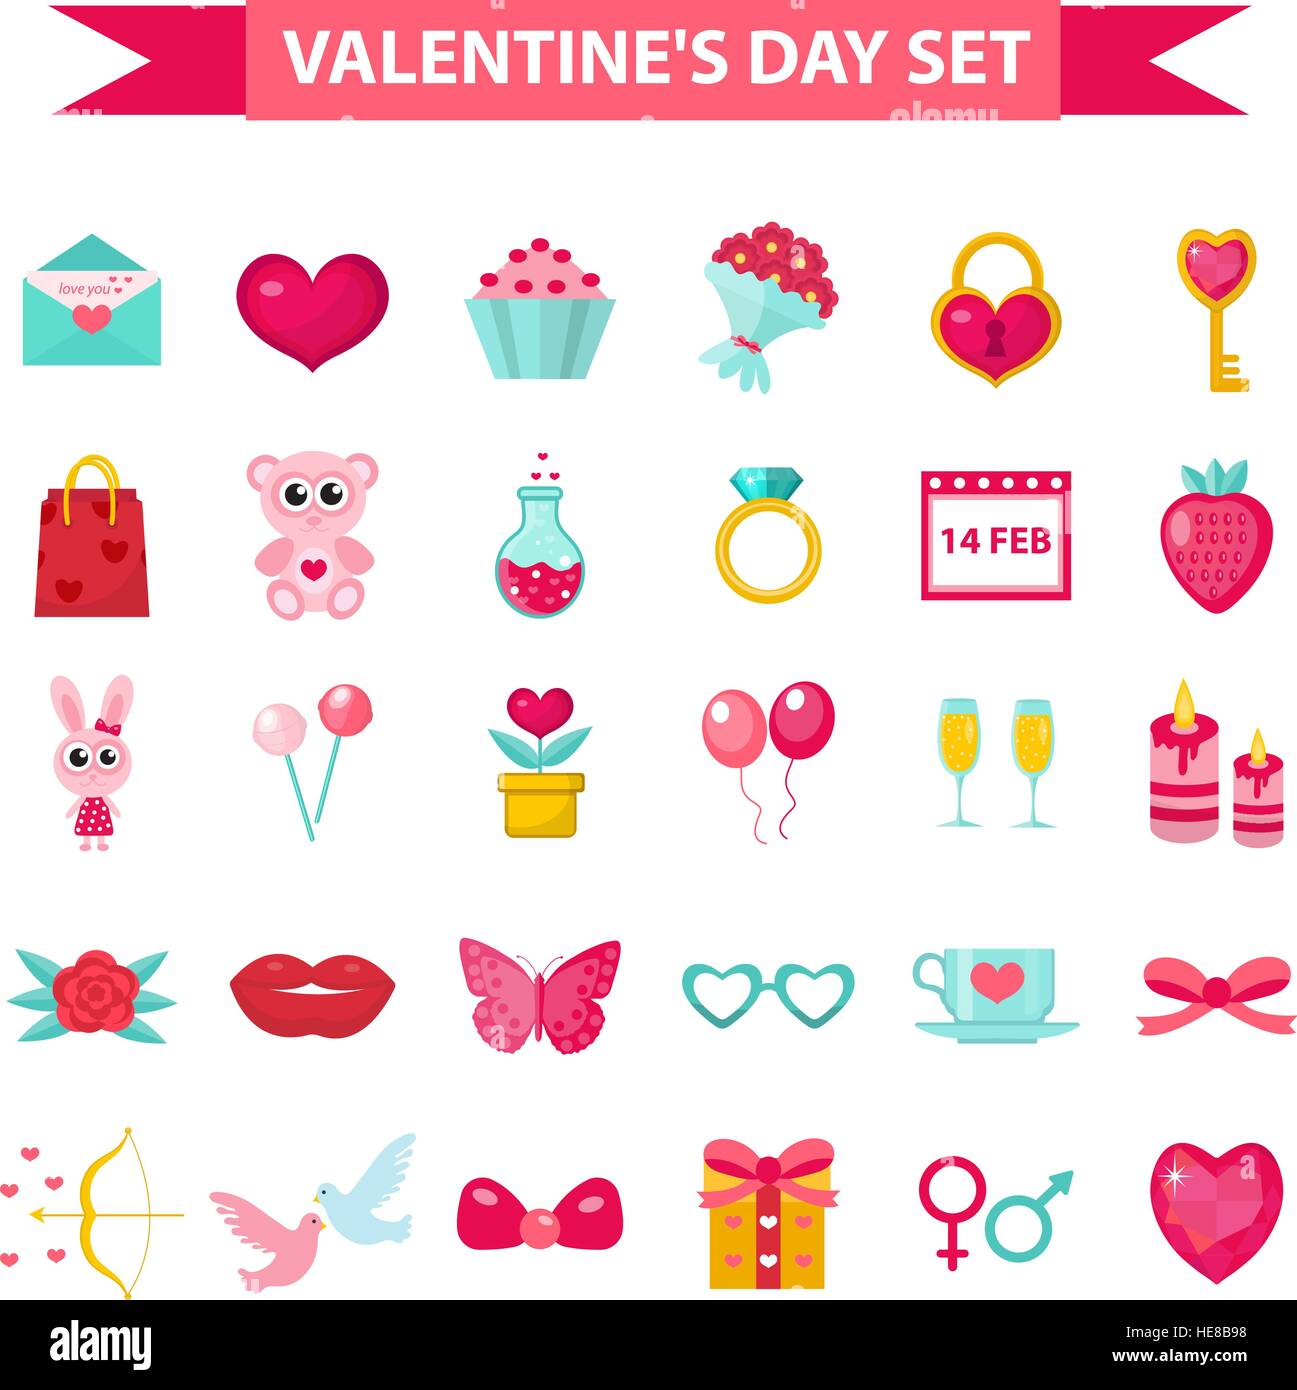 Valentines Day Icon Set Flat Style Love Romance And Dating